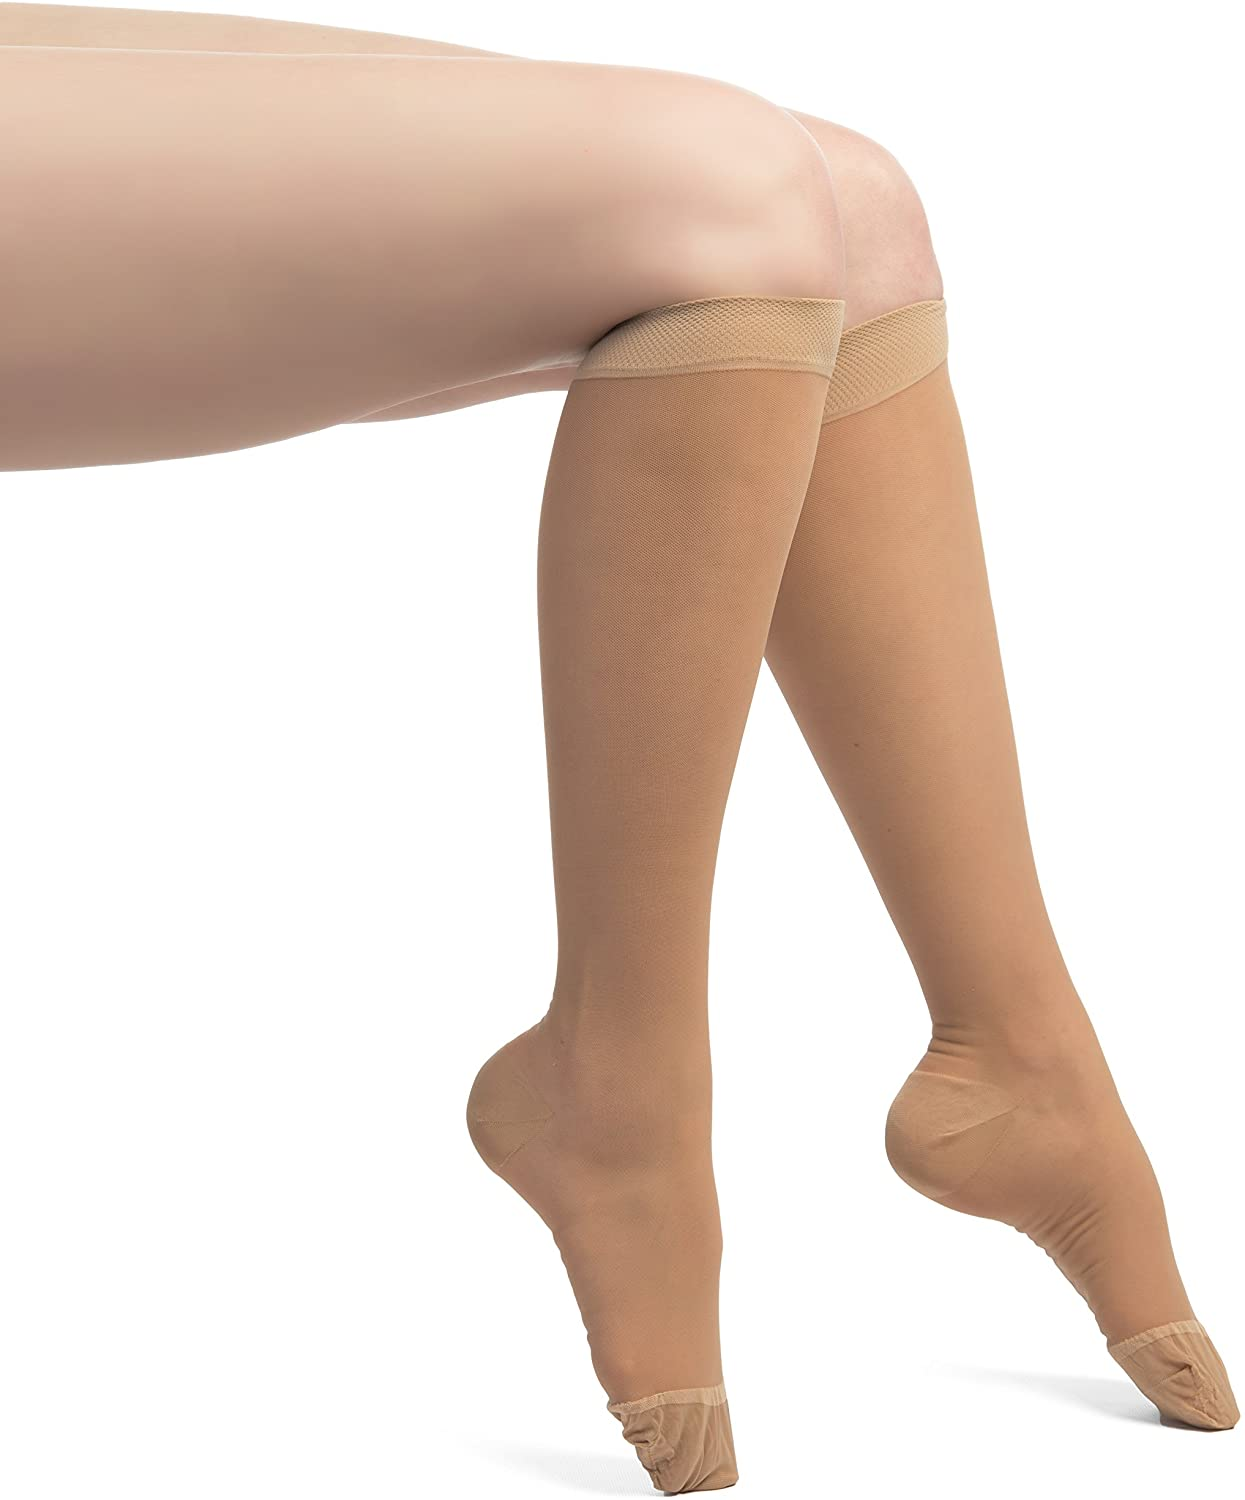 EvoNation Women's USA Made Sheer Graduated Compression Socks 8-15 mmHg Mild Pressure Medical Quality Knee High Support Stockings Hose - Circulation Travel (Large, Tan Nude Beige)